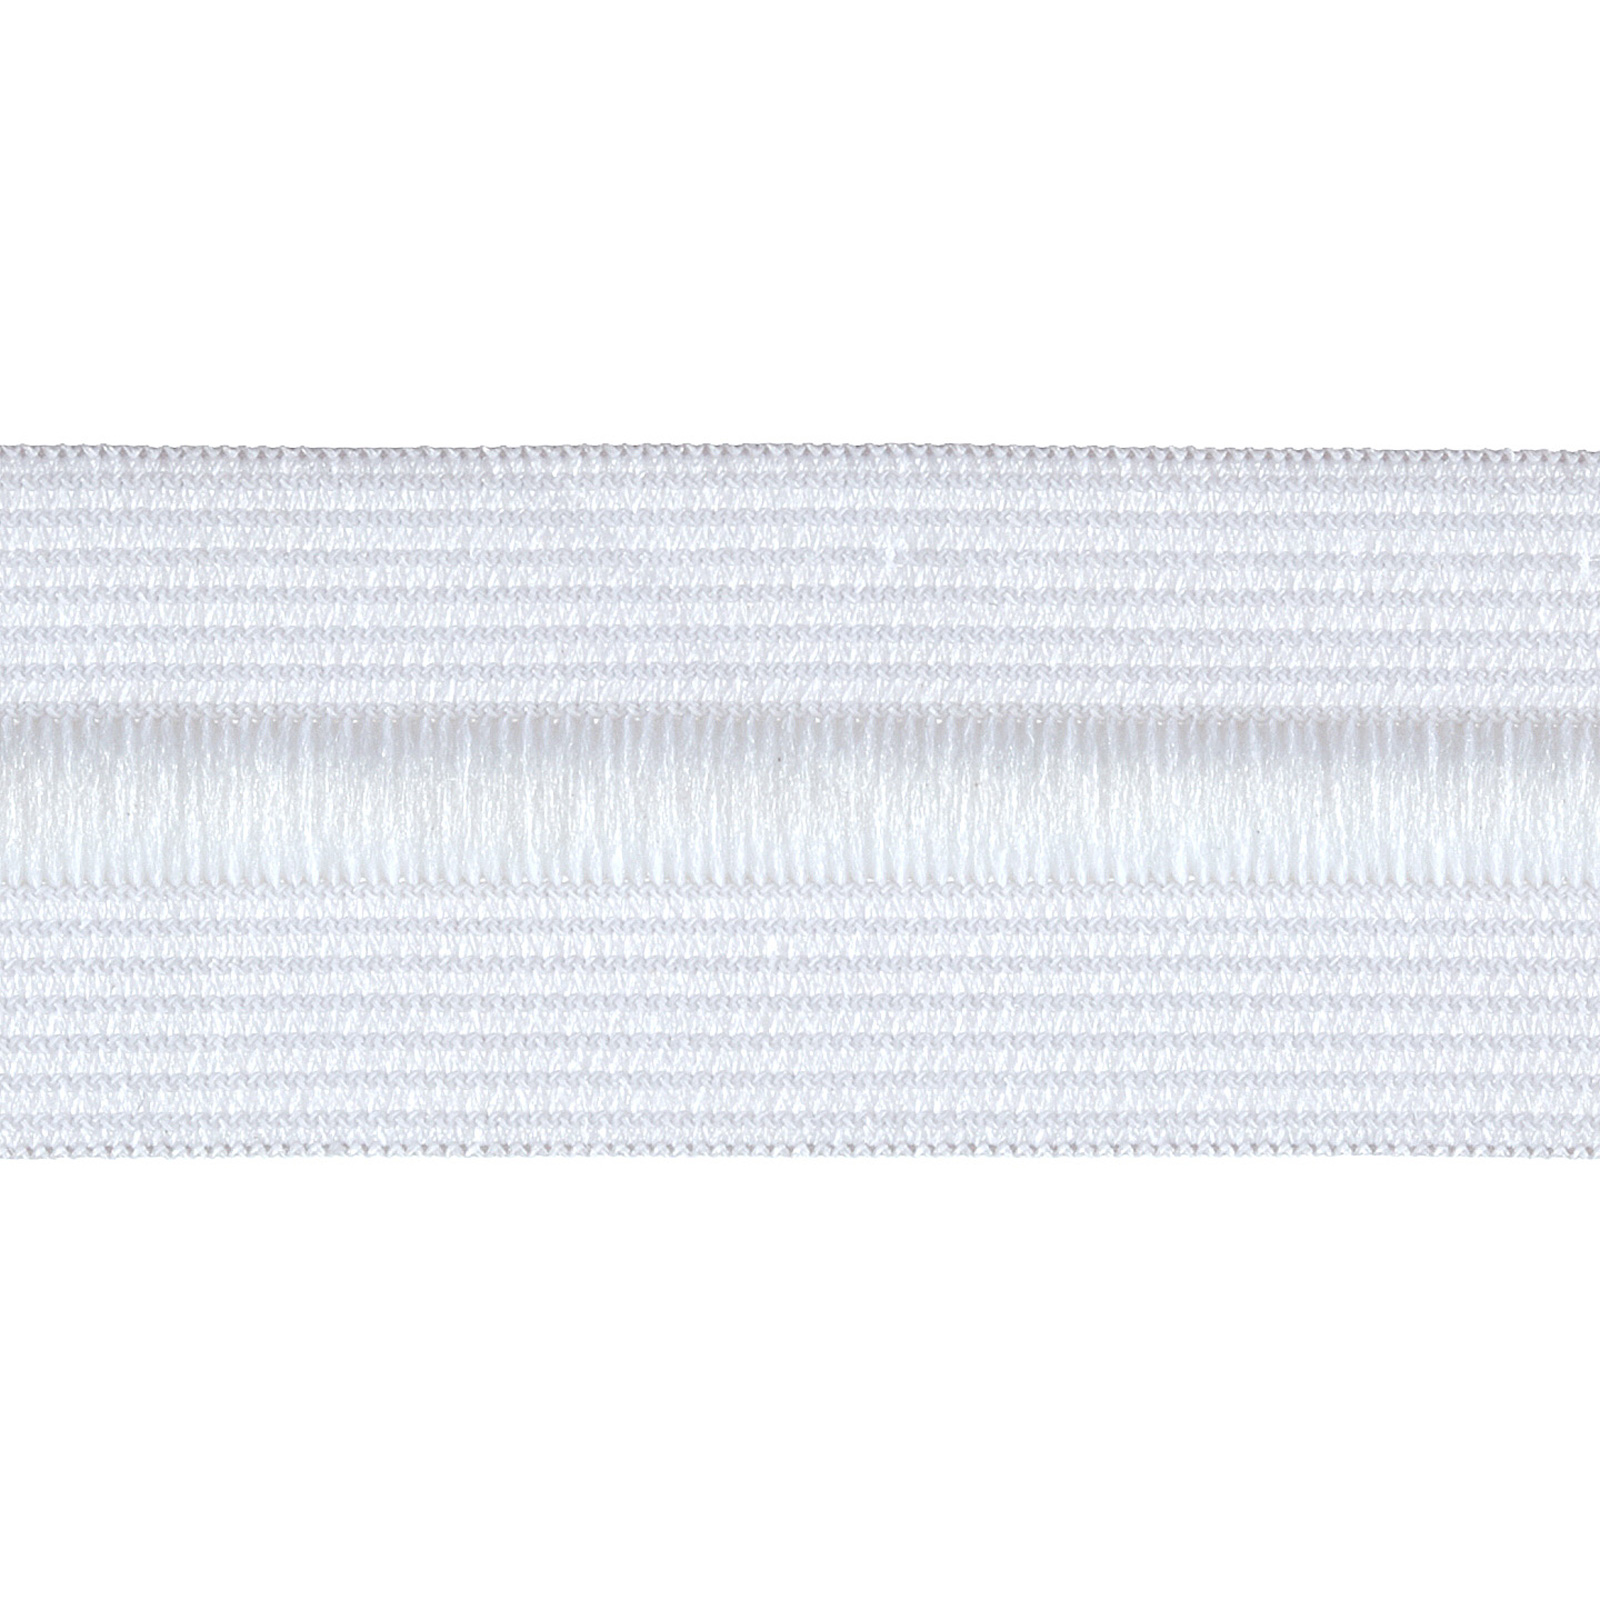 1-1/4'' Drawcord Elastic White by Notions Marketing in USA